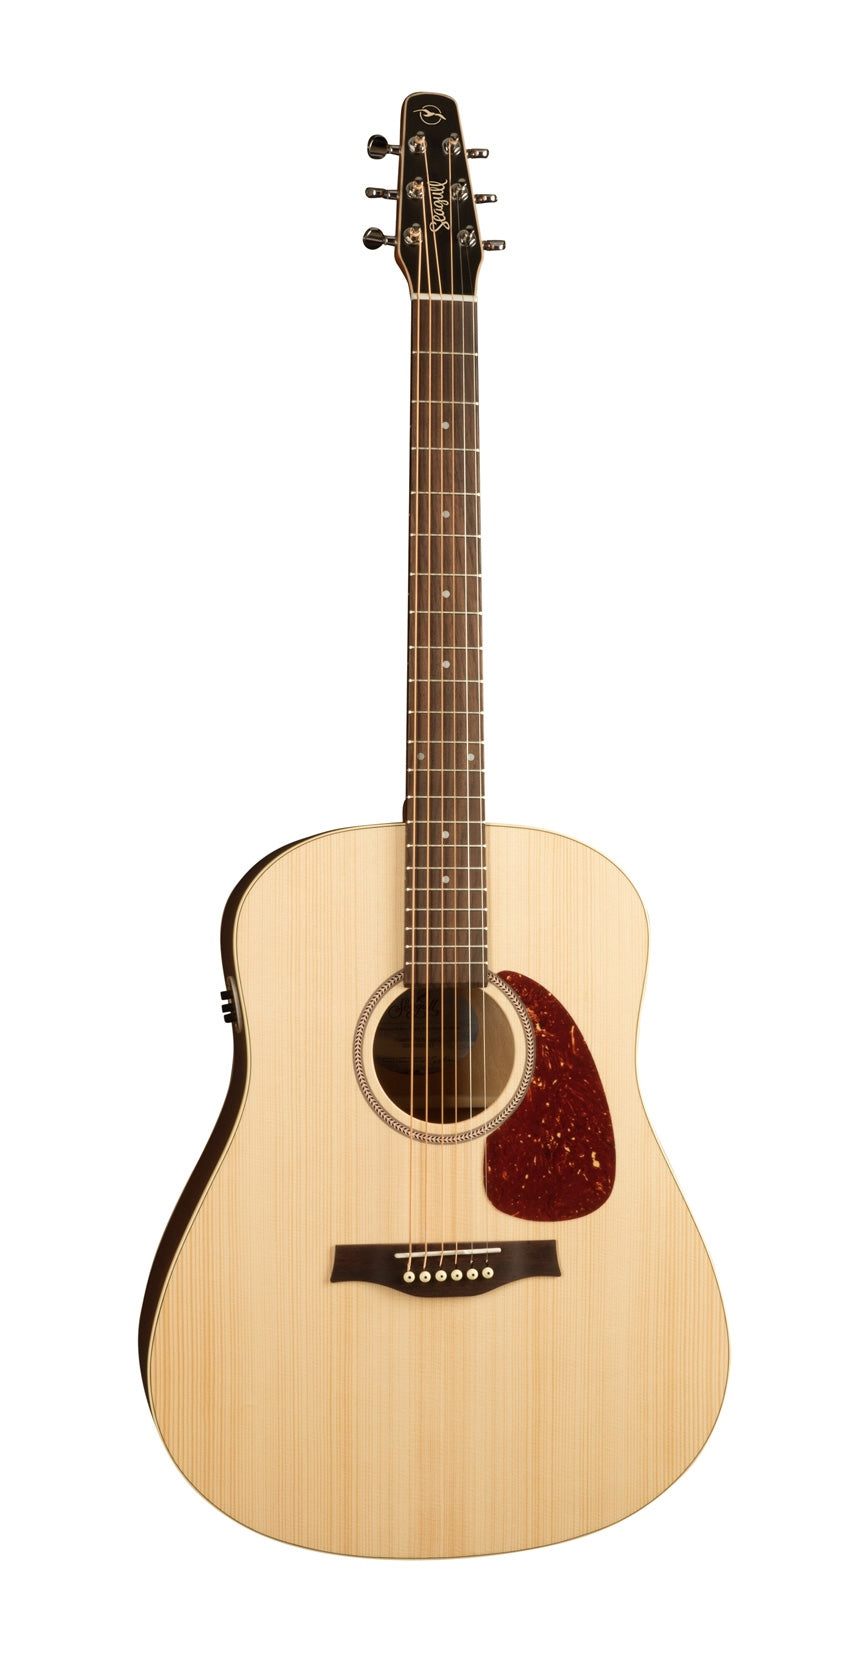 Seagull Coastline S6 Spruce QIT Acoustic Electric Guitar